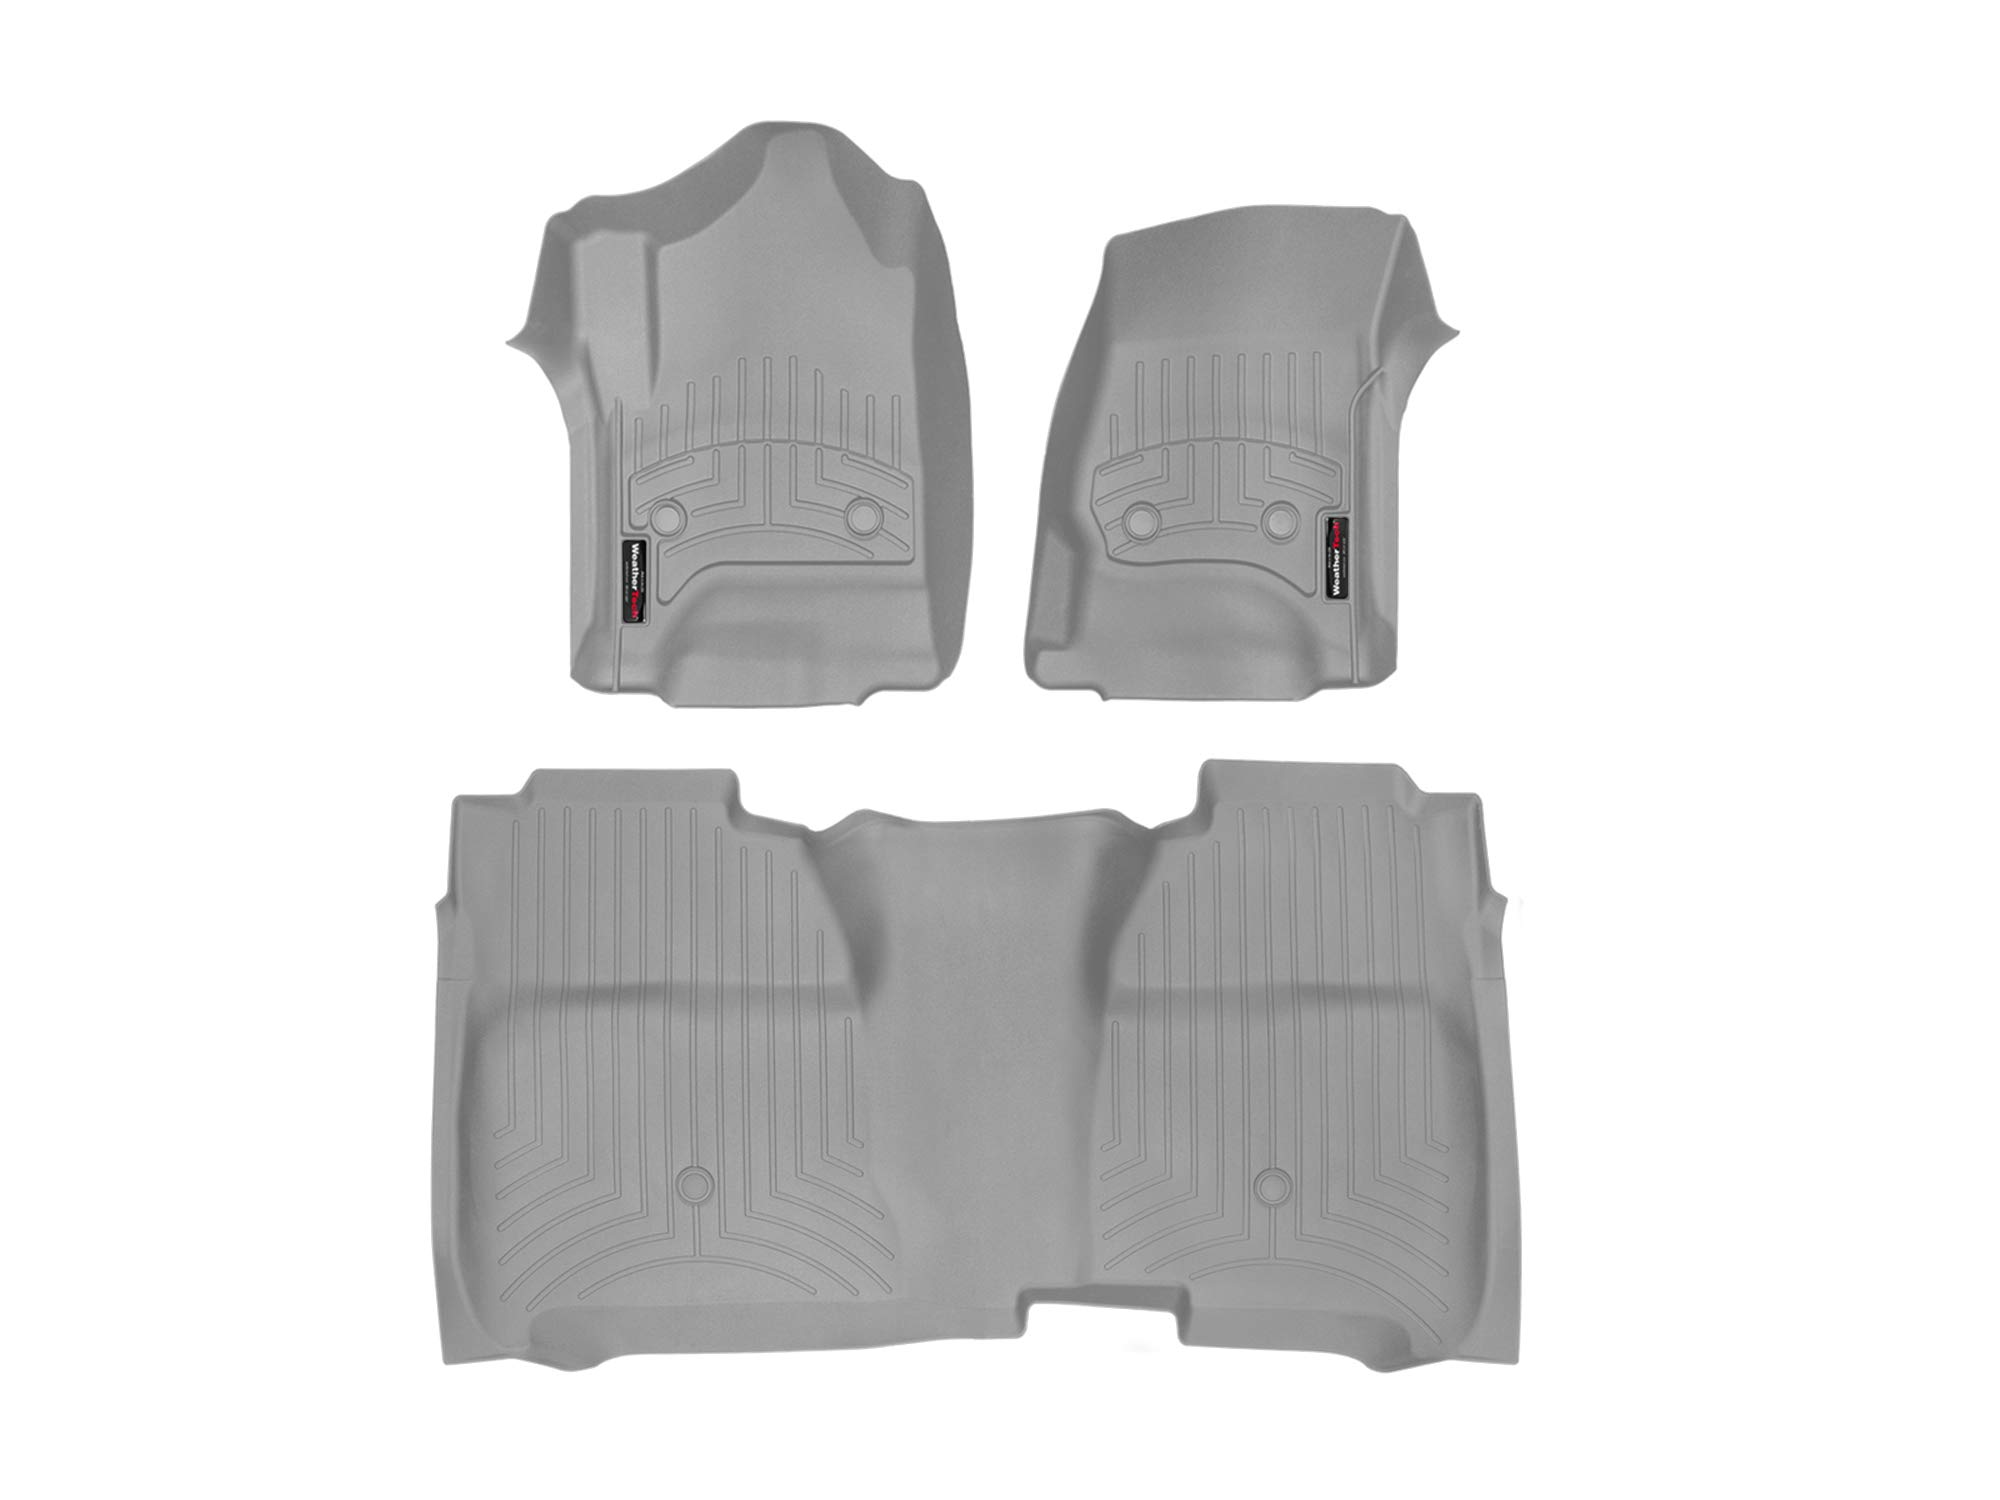 WeatherTech Custom Fit FloorLiner for Silverado/Sierra Crew Cab - 1st & 2nd Row (Grey)